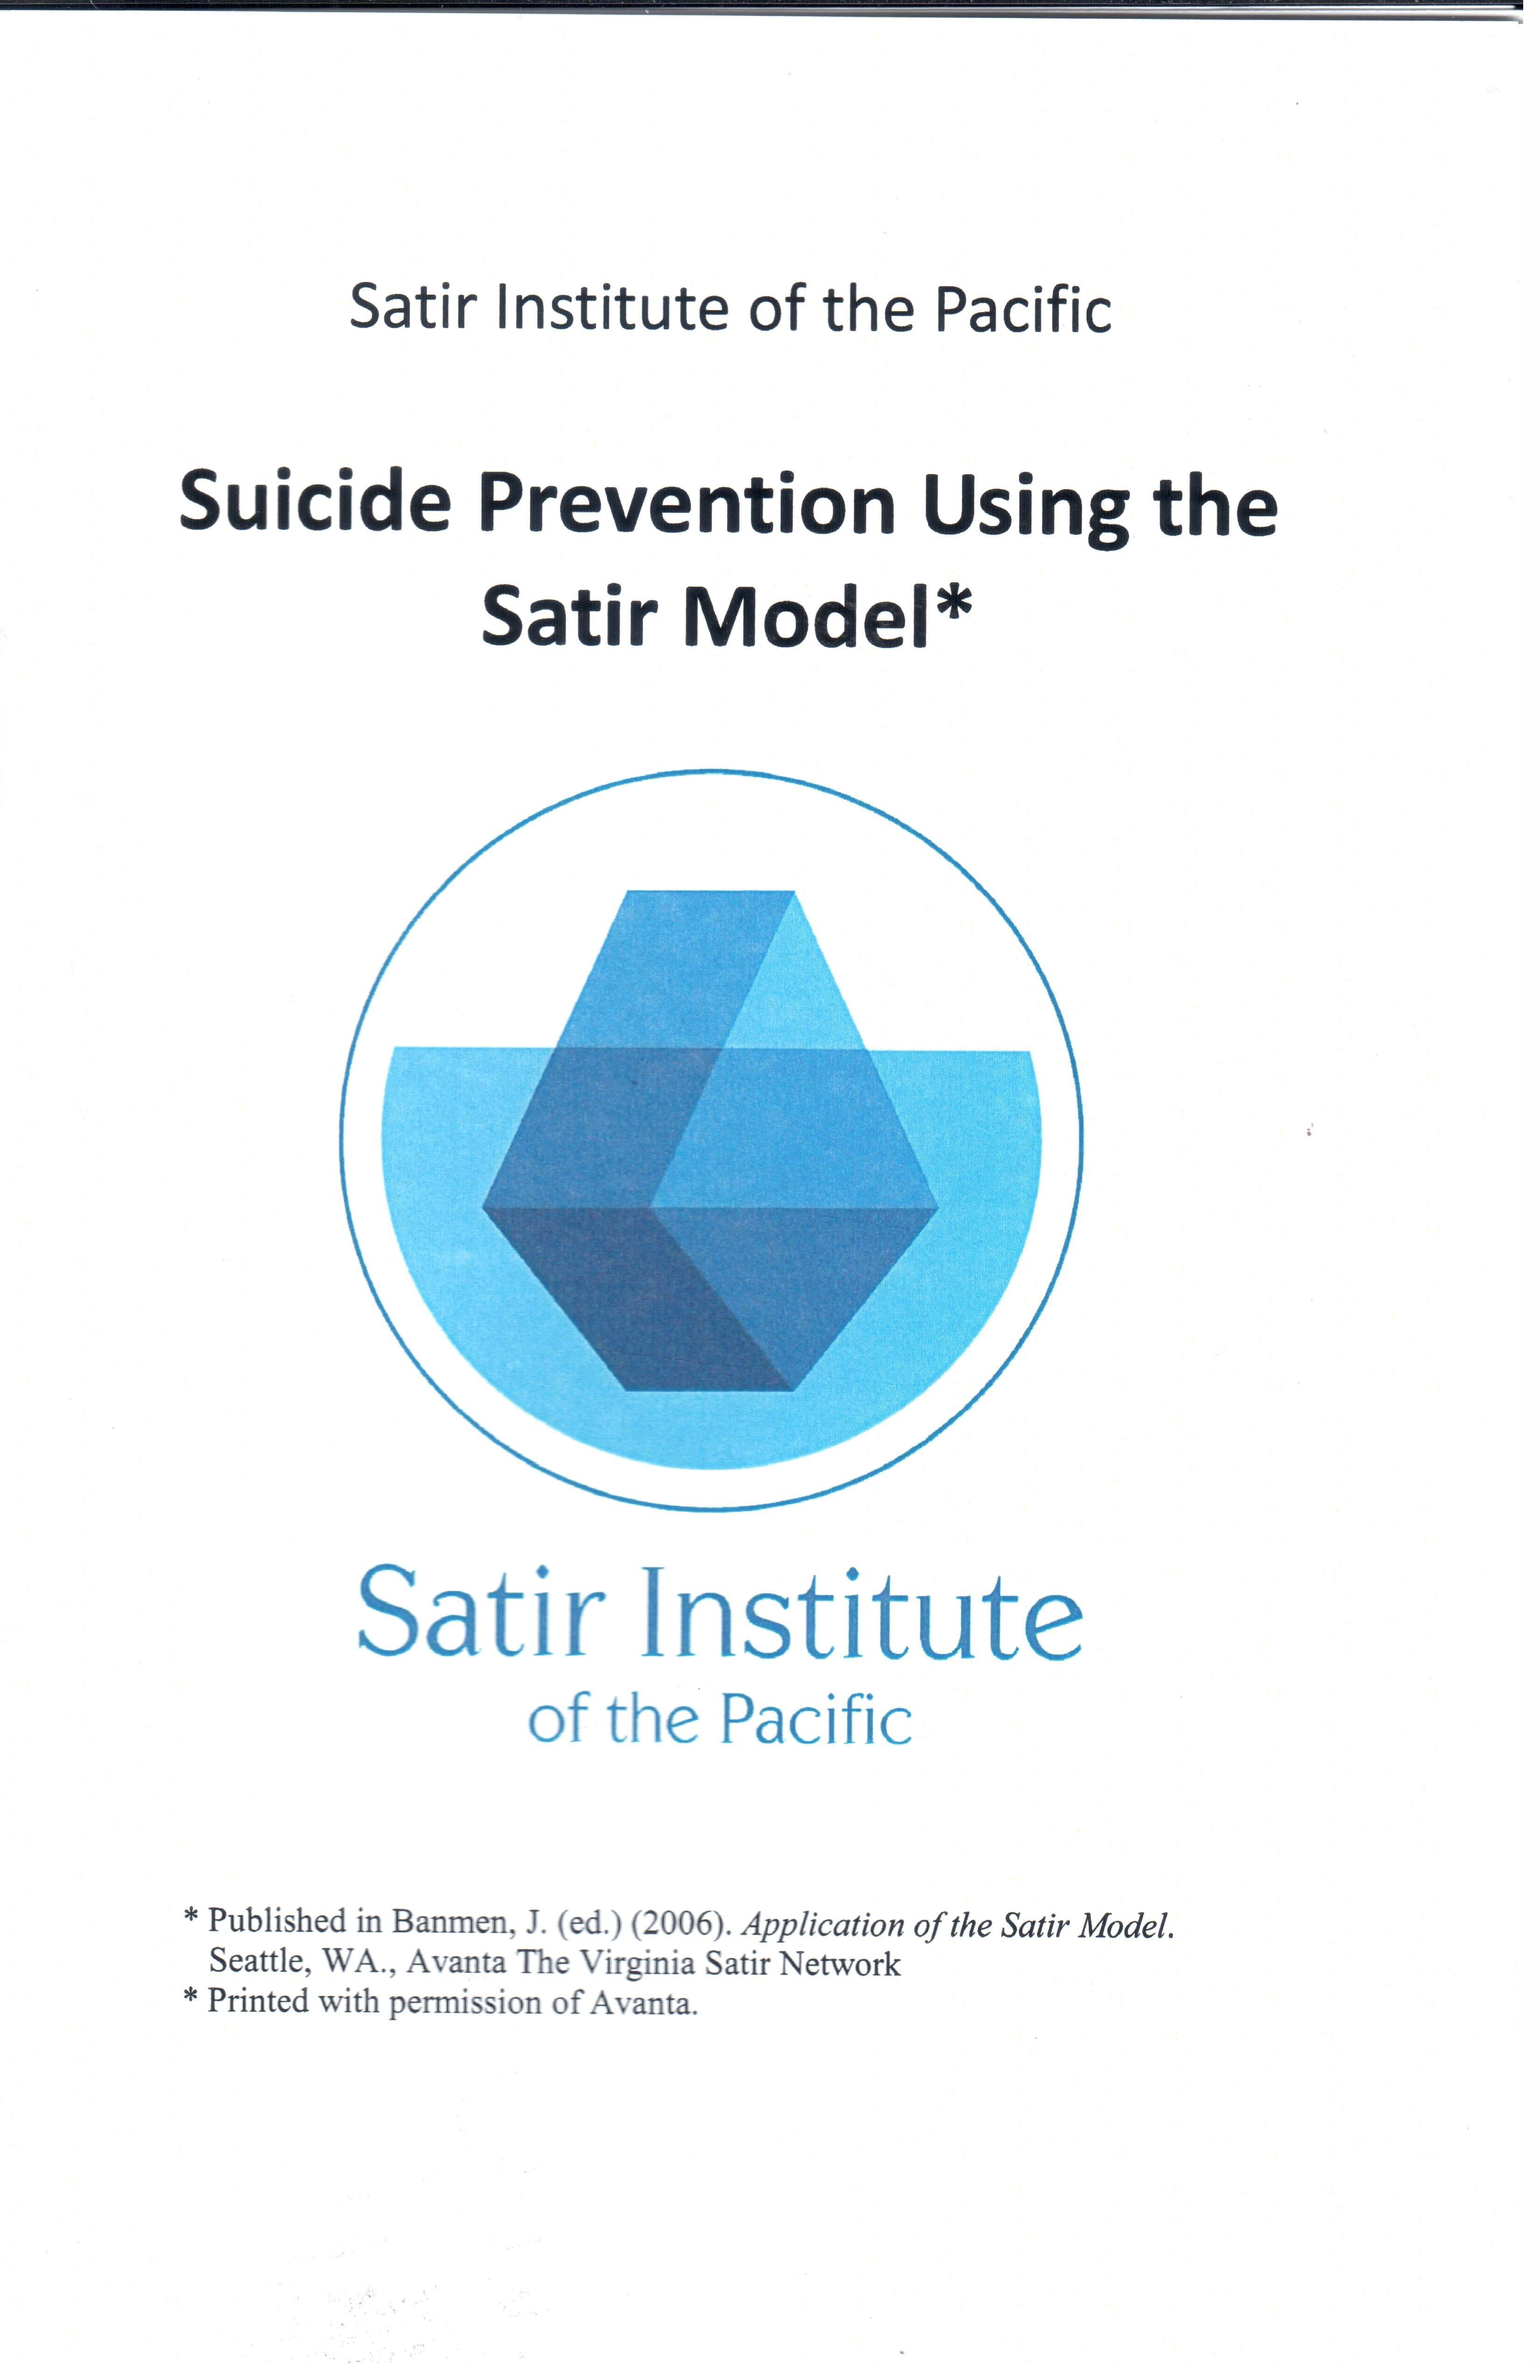 Suicide Prevention Using the Satir Model